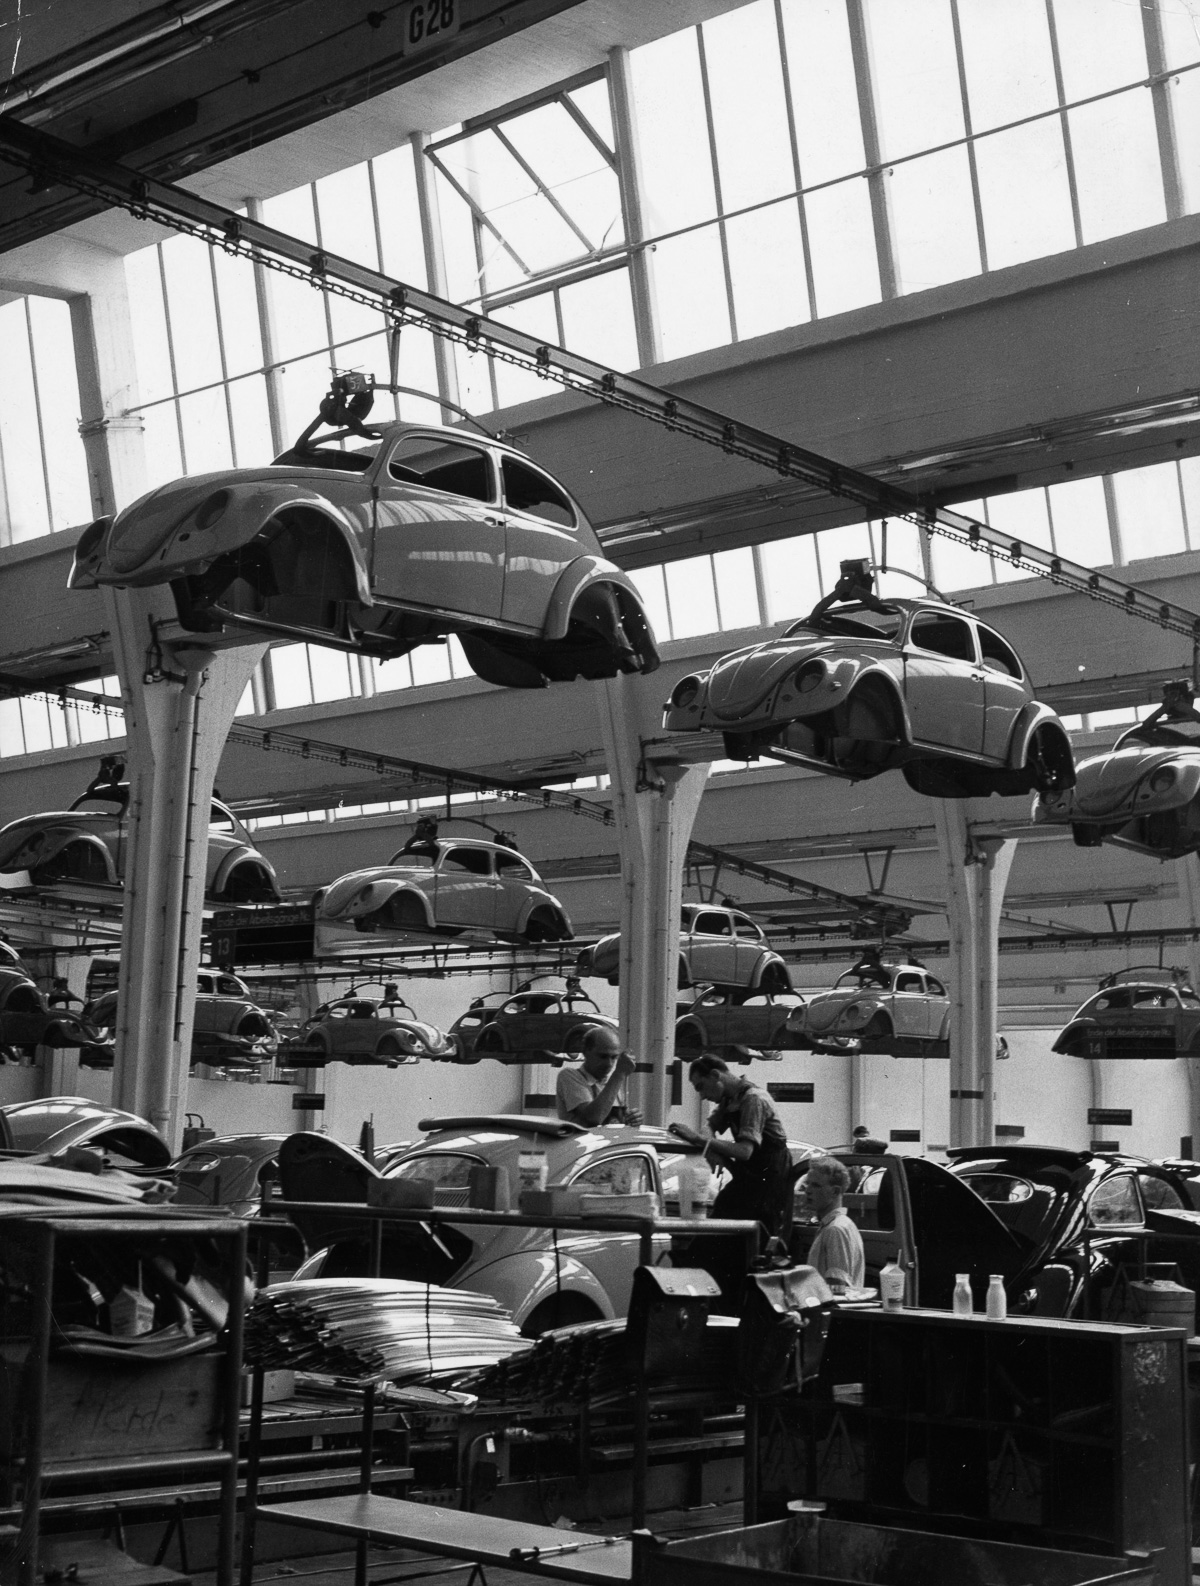 circa 1955: Workers on the production line of a Volkswagen factory at work on Beetles. (Photo by Keystone/Getty Images)